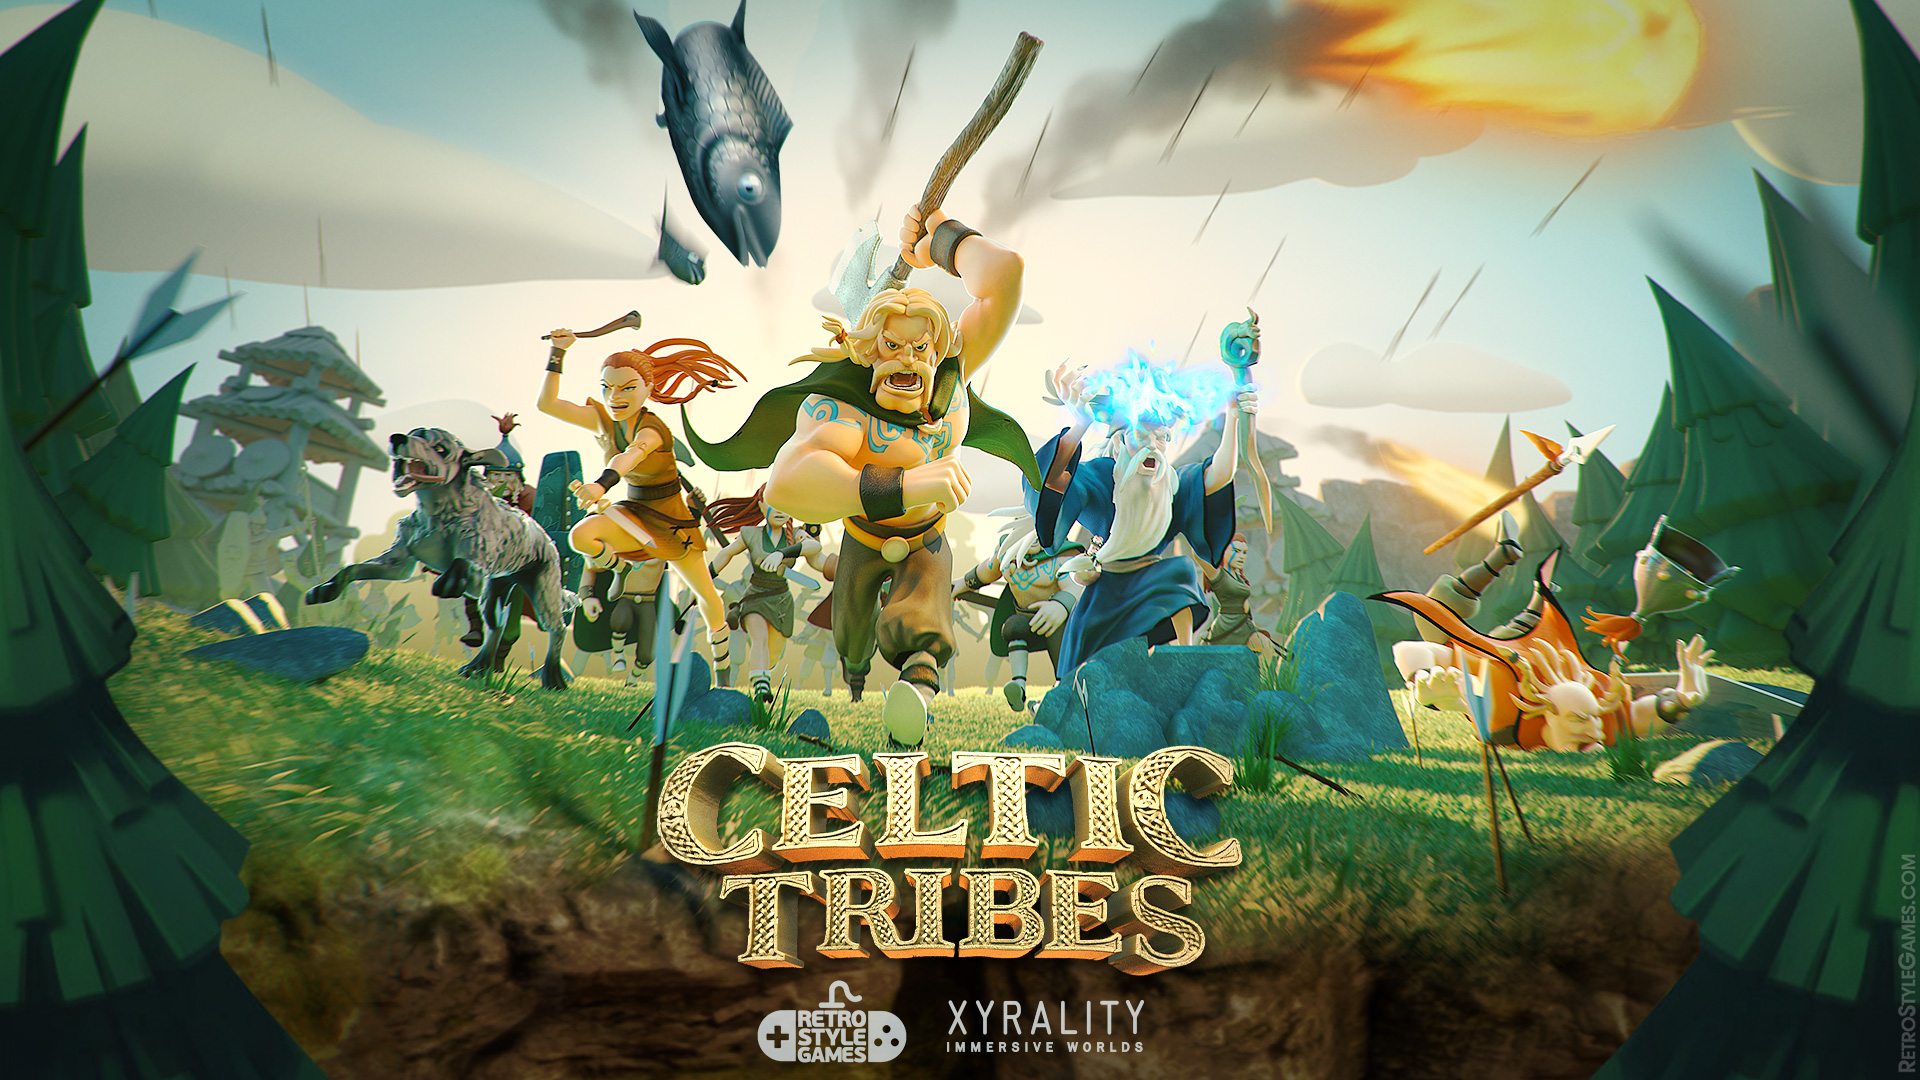 Fantasy 3D Character Concept Art Celtic Tribes